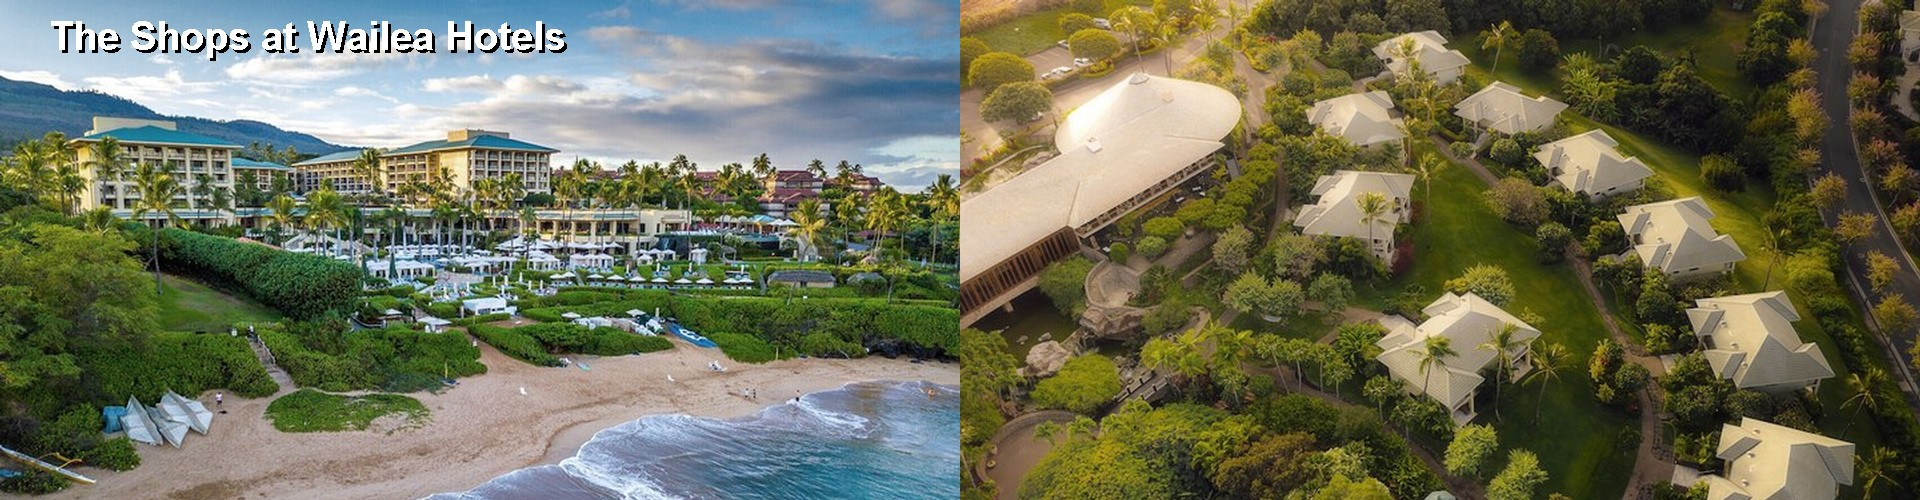 5 Best Hotels near The Shops at Wailea